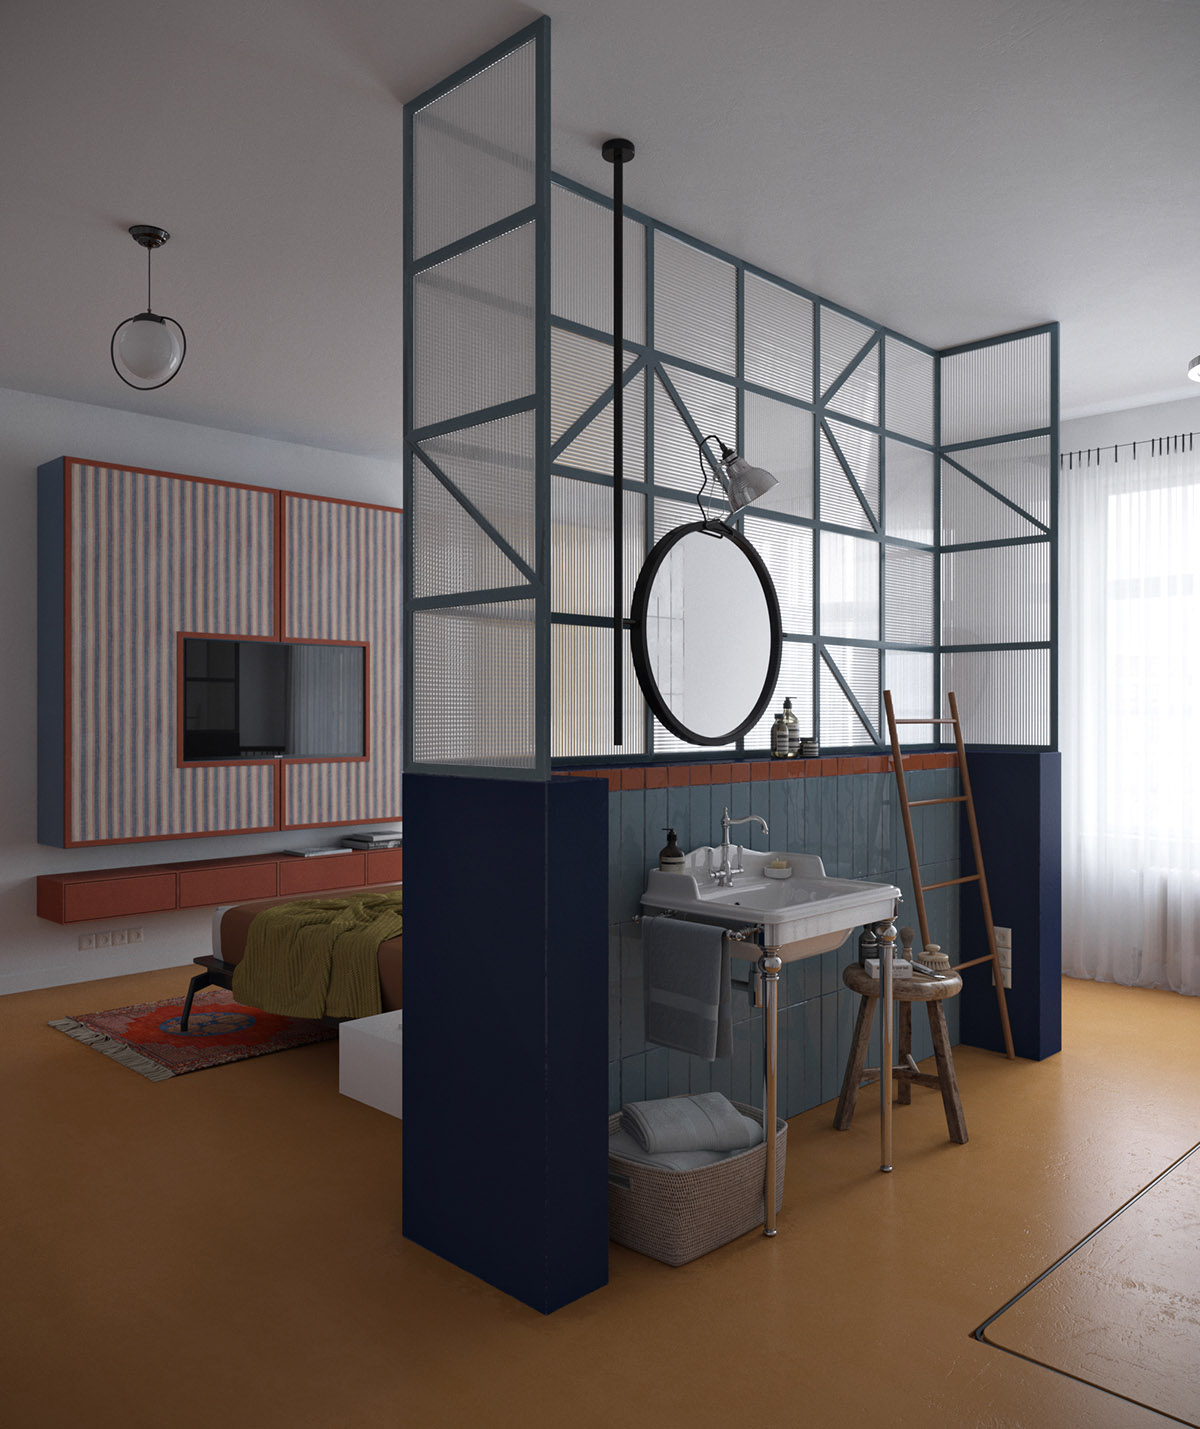 Piet Mondrian Inspired Interior Design To Give Your Home The De Stijl Flair images 3